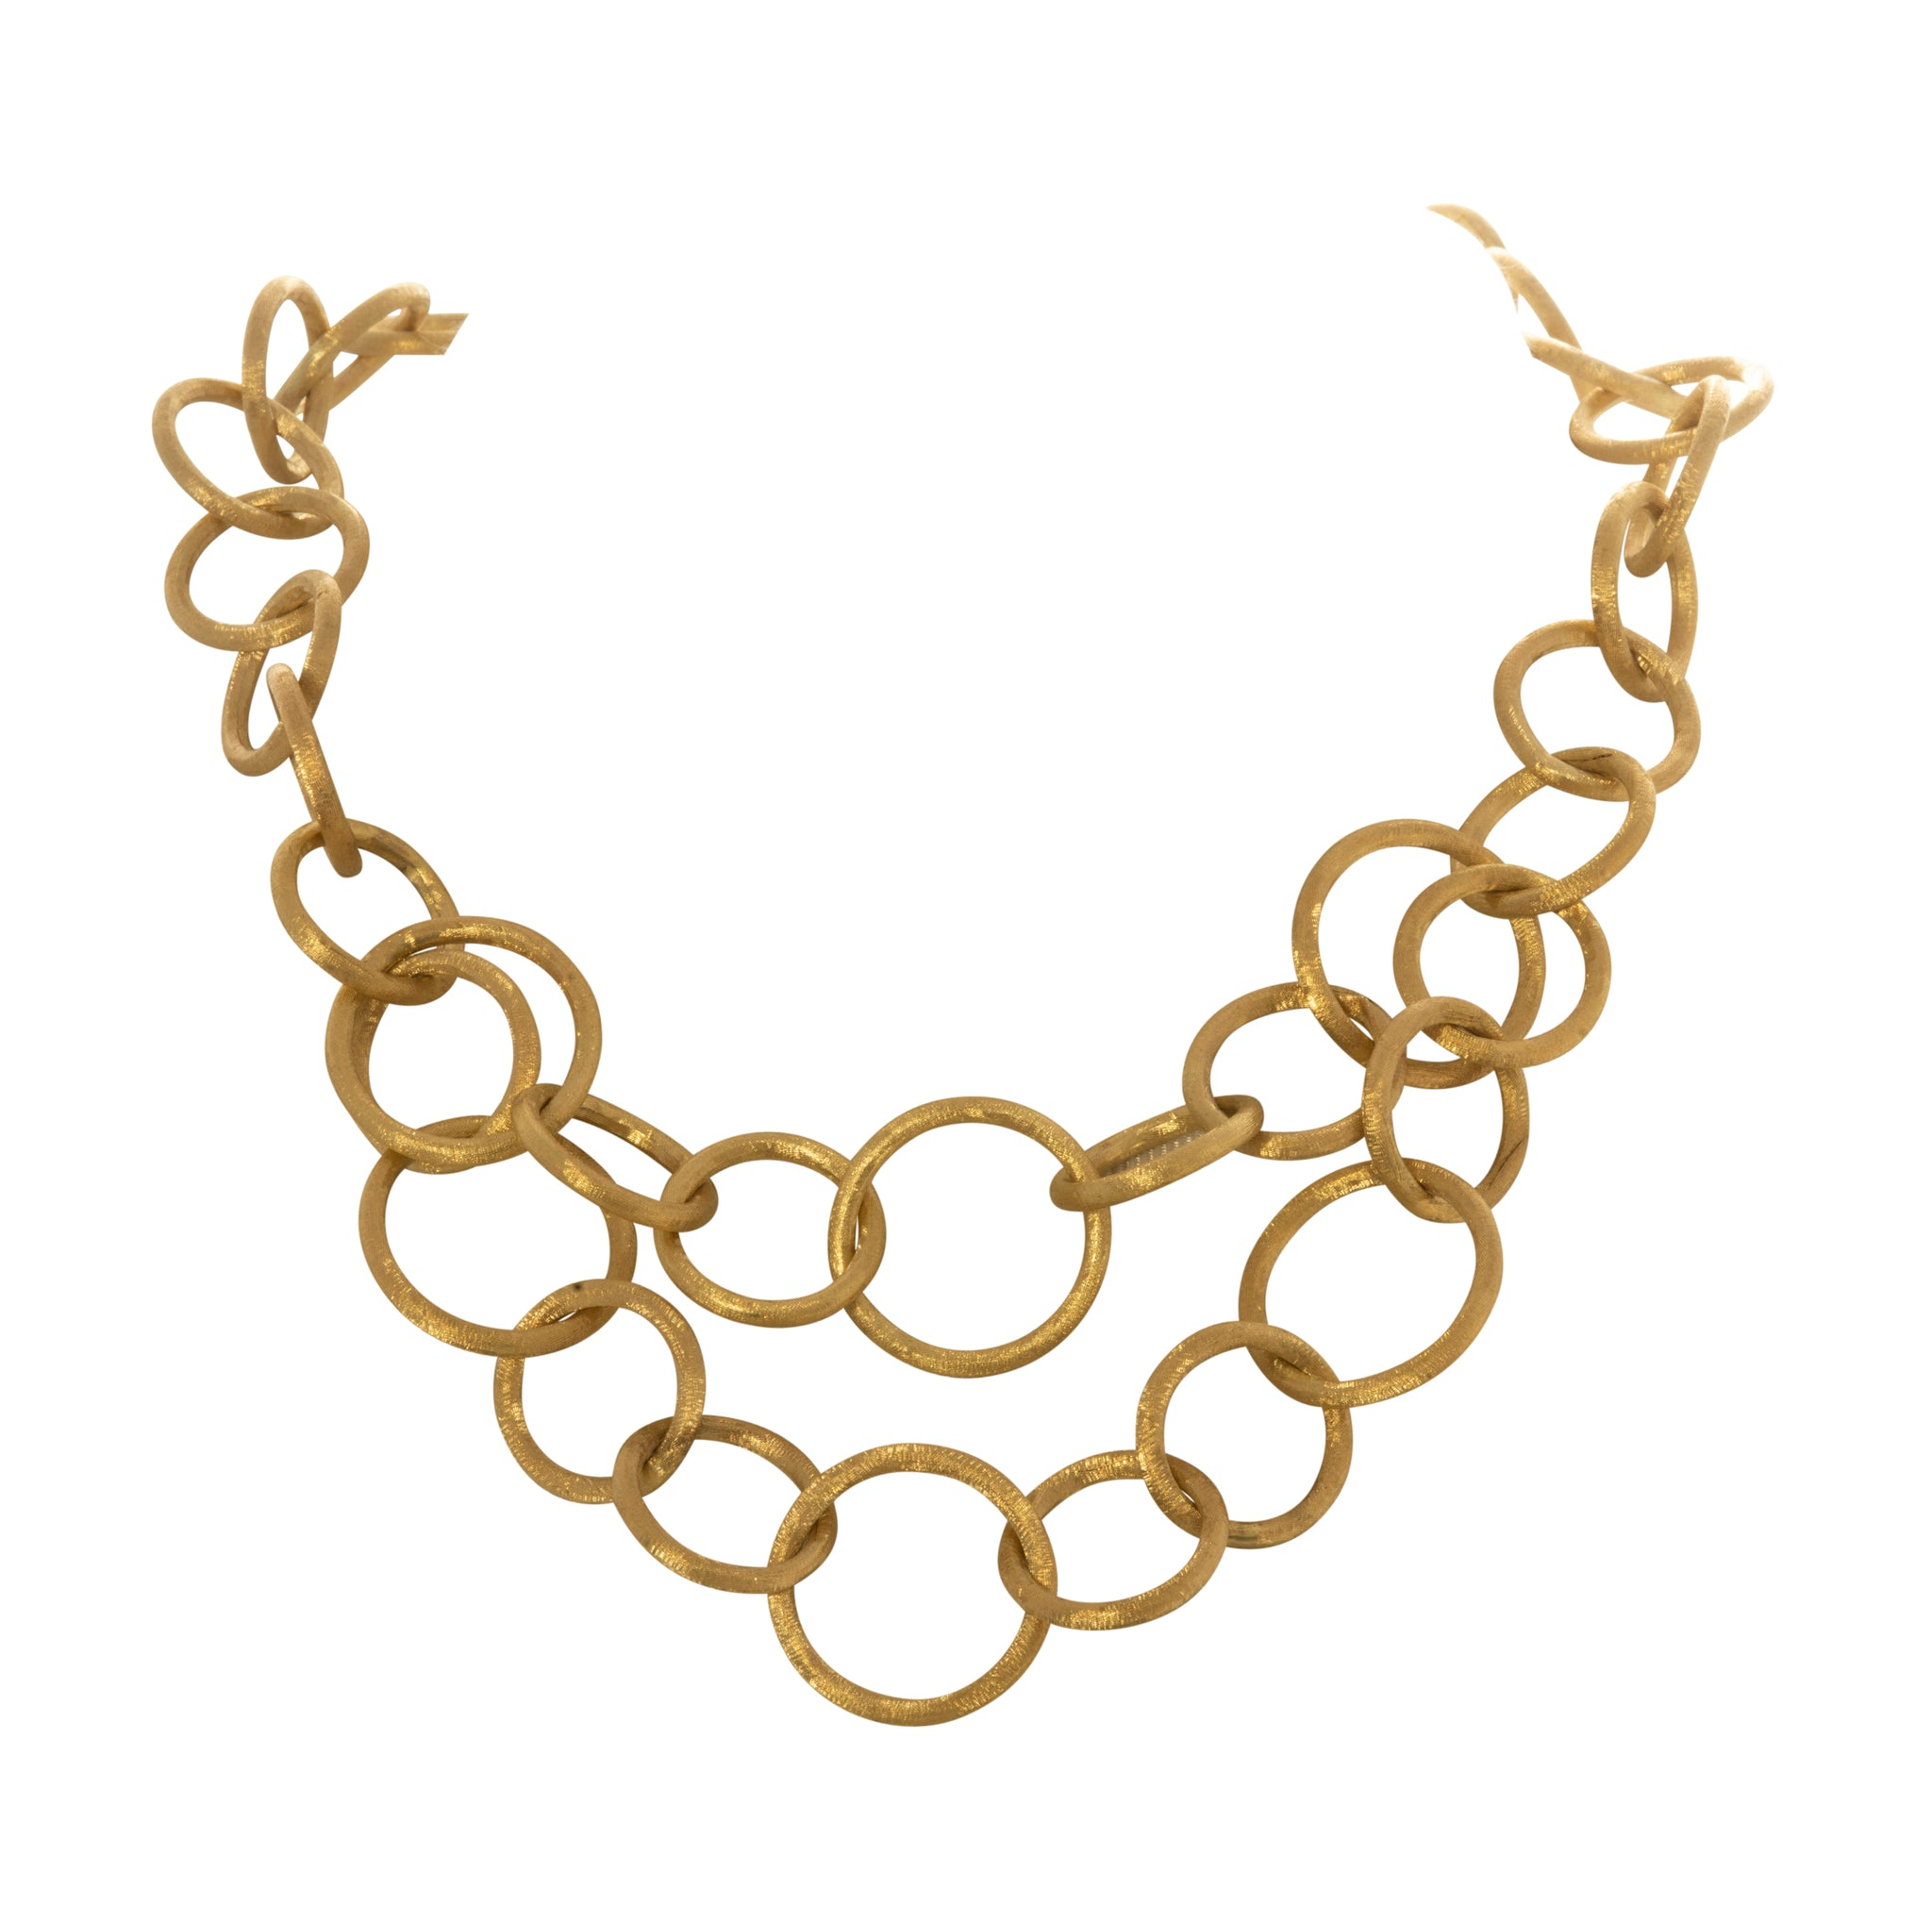 Satin Finish 14K Yellow Gold Circle Link Necklace